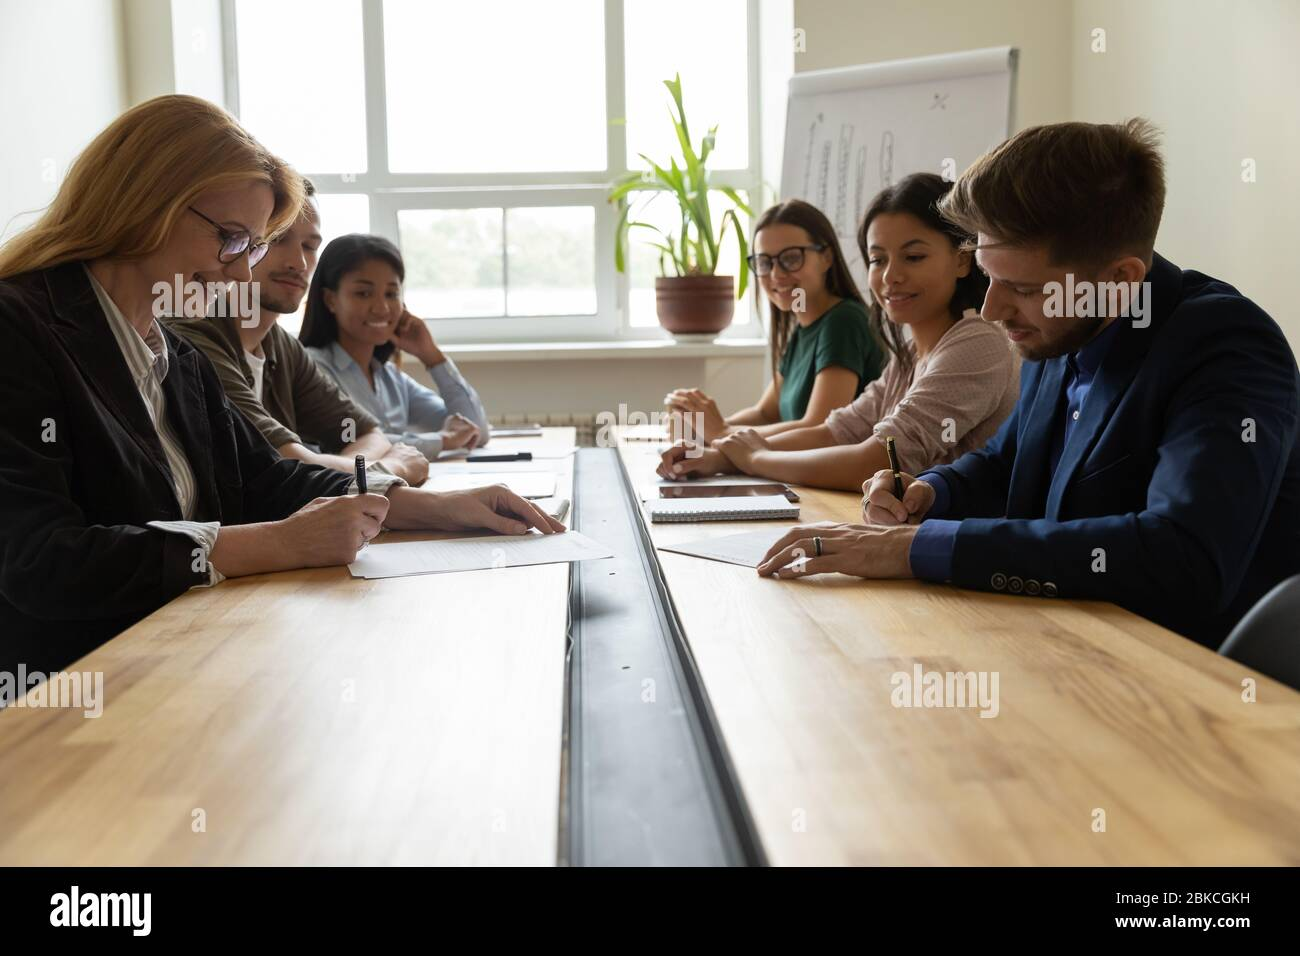 Smiling adult businesswoman signing up documents with serious businessman. Stock Photo